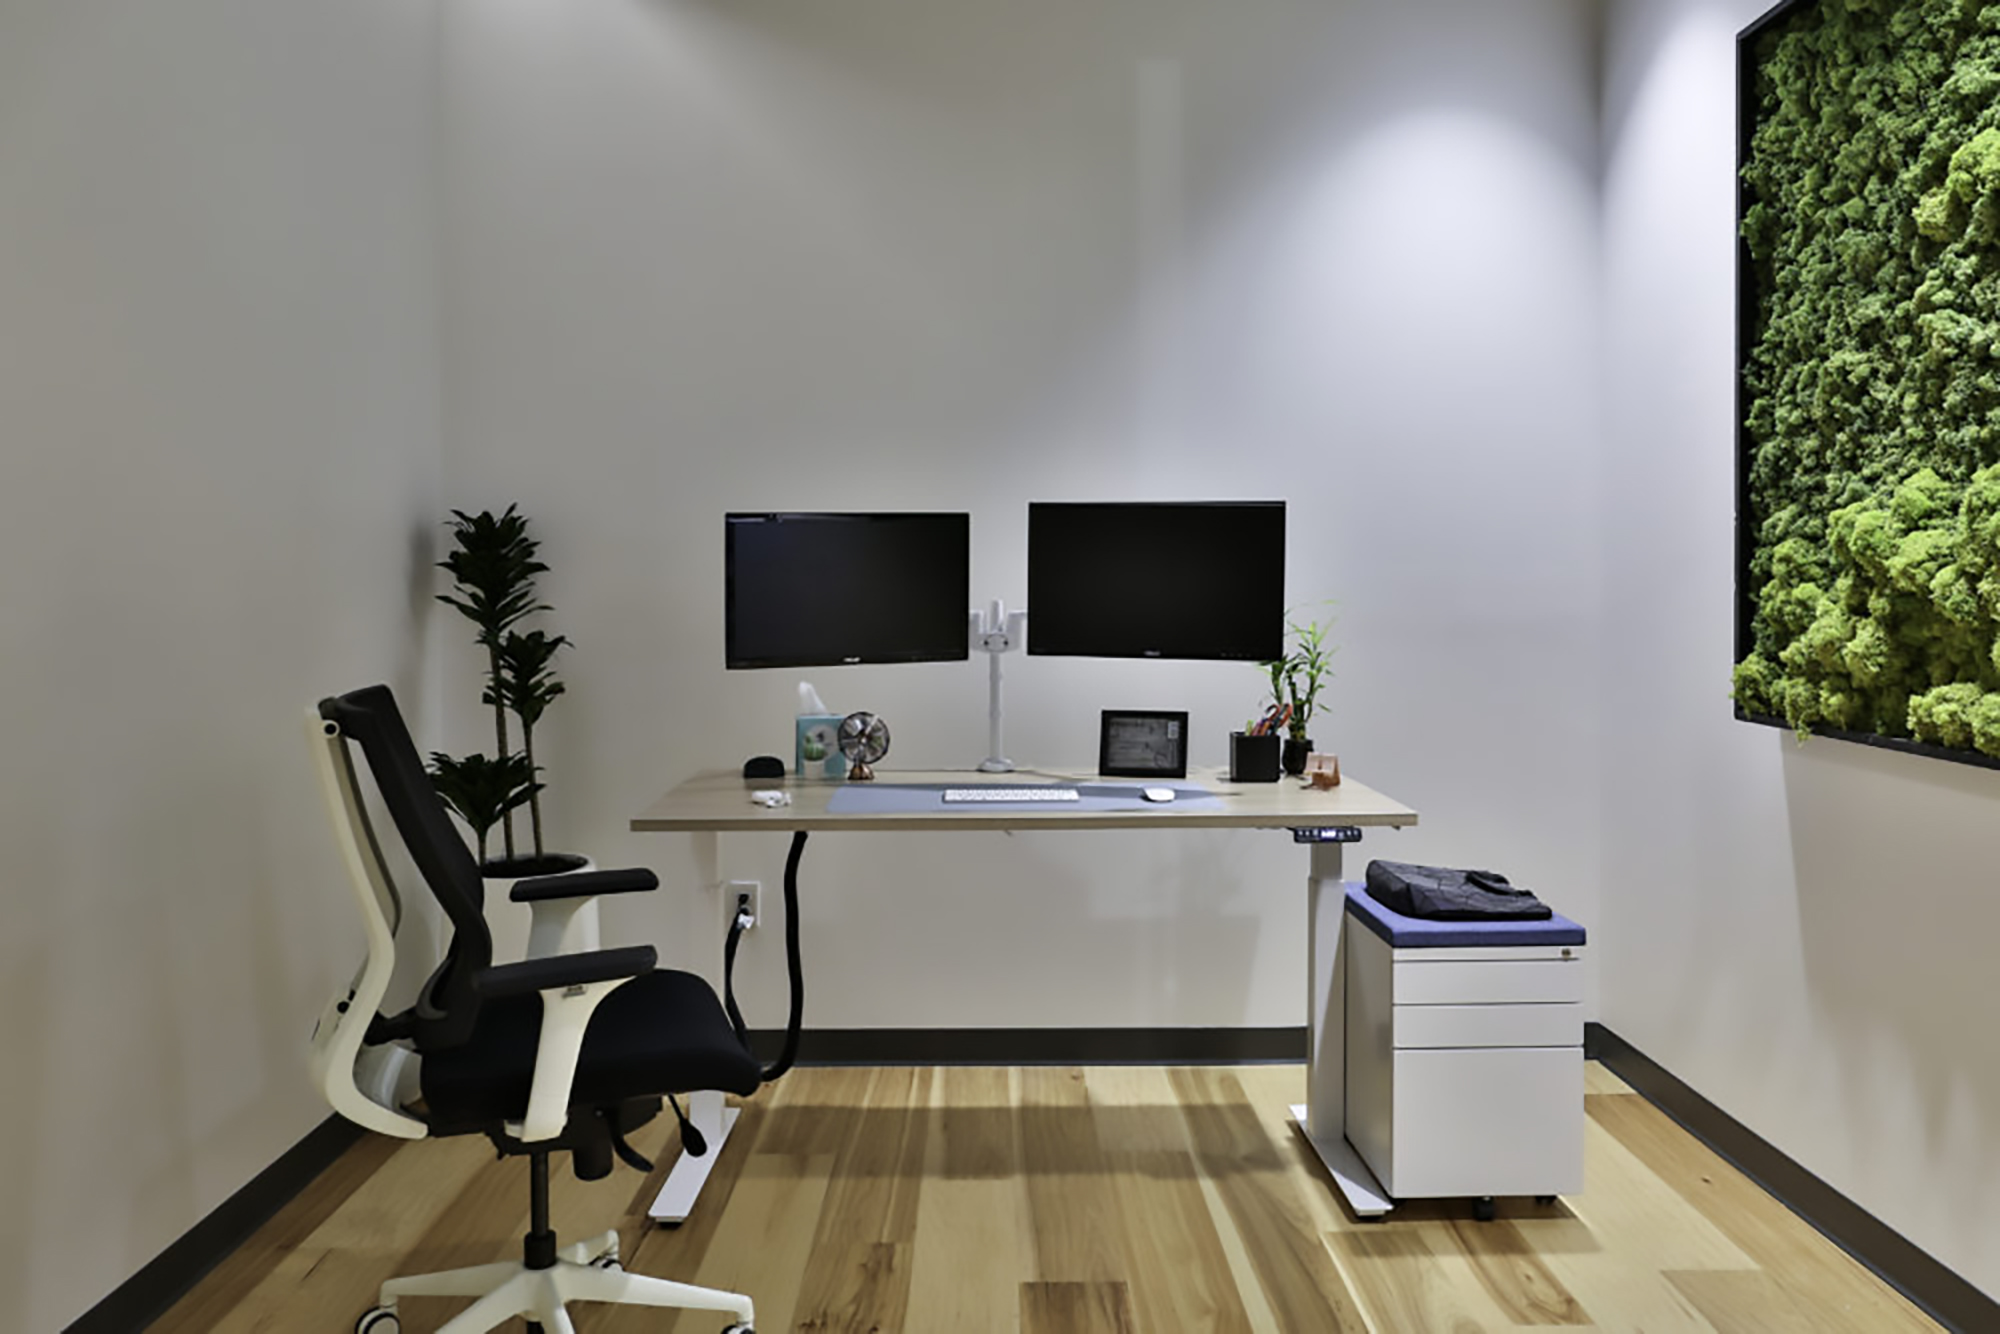 """For those who prefer standing, Clear Design's Boost height-adjustable table desk and the Versteel Sky (pictured at top) offer heights ranging from 27"""" to 44.5"""" with a dual-stage digital handset. Don't forget the monitor arm to help maximize your desk space and storage for underneath."""